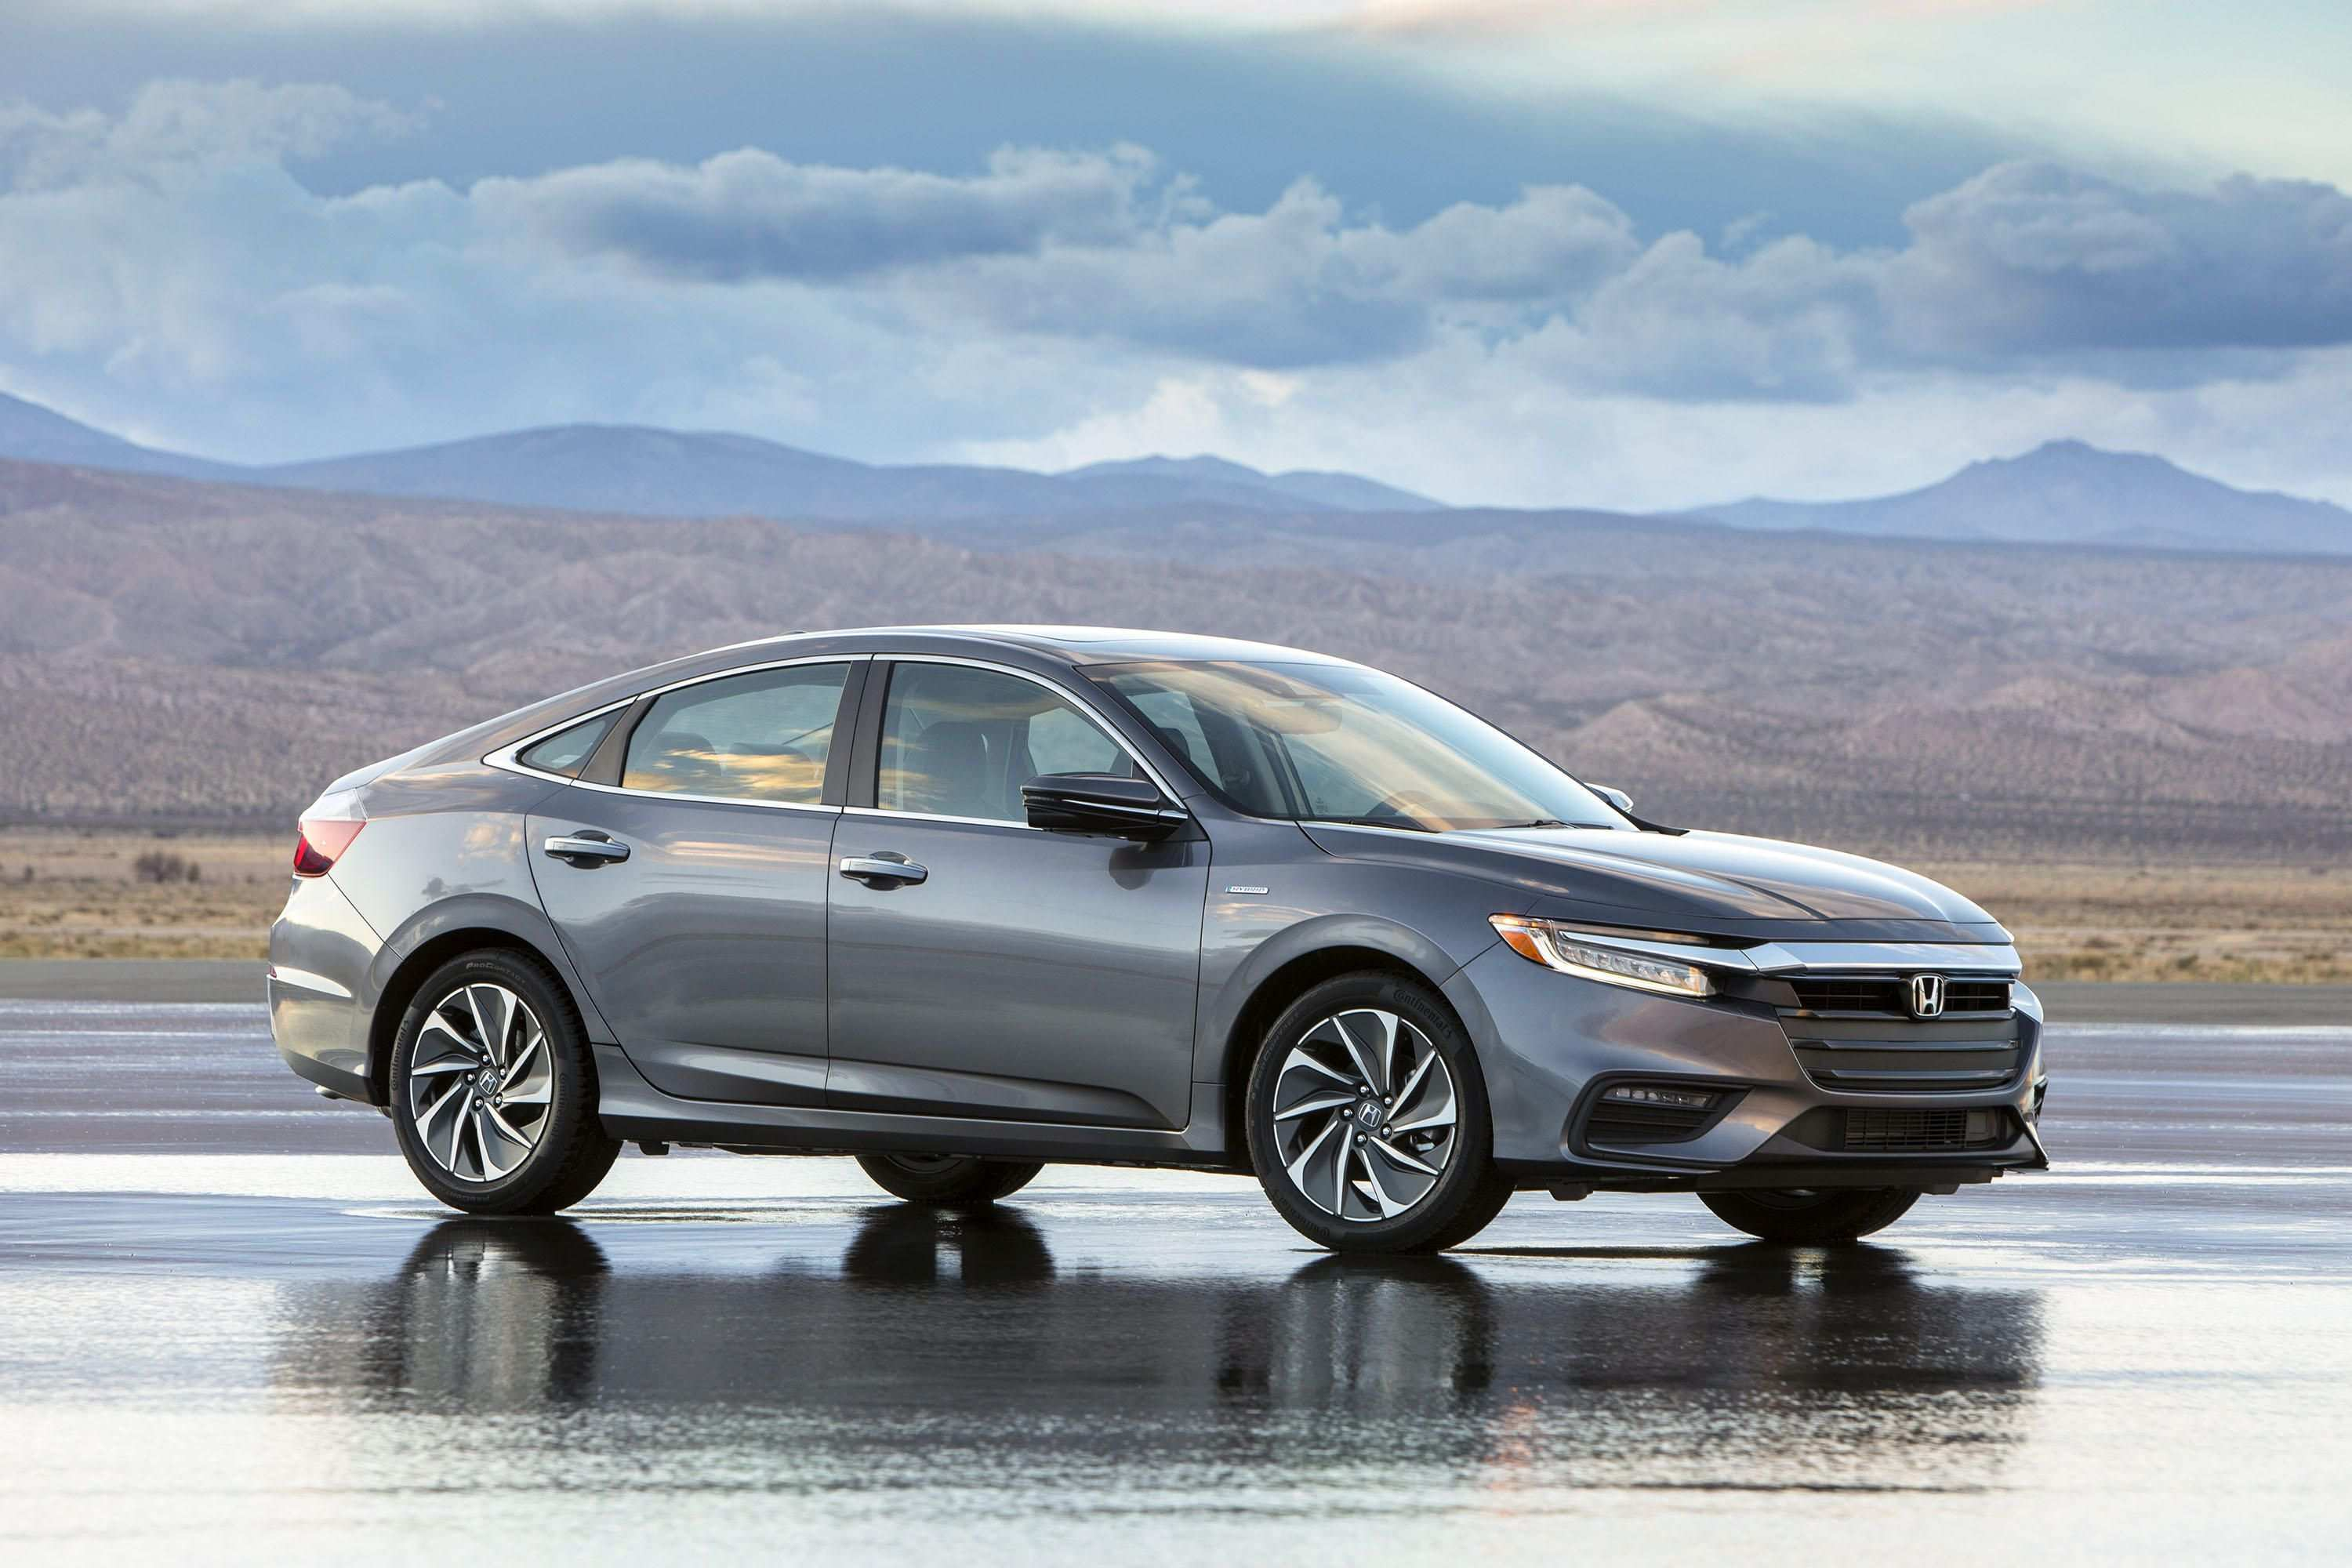 94 Great 2019 Honda Insight Hybrid Price with 2019 Honda Insight Hybrid